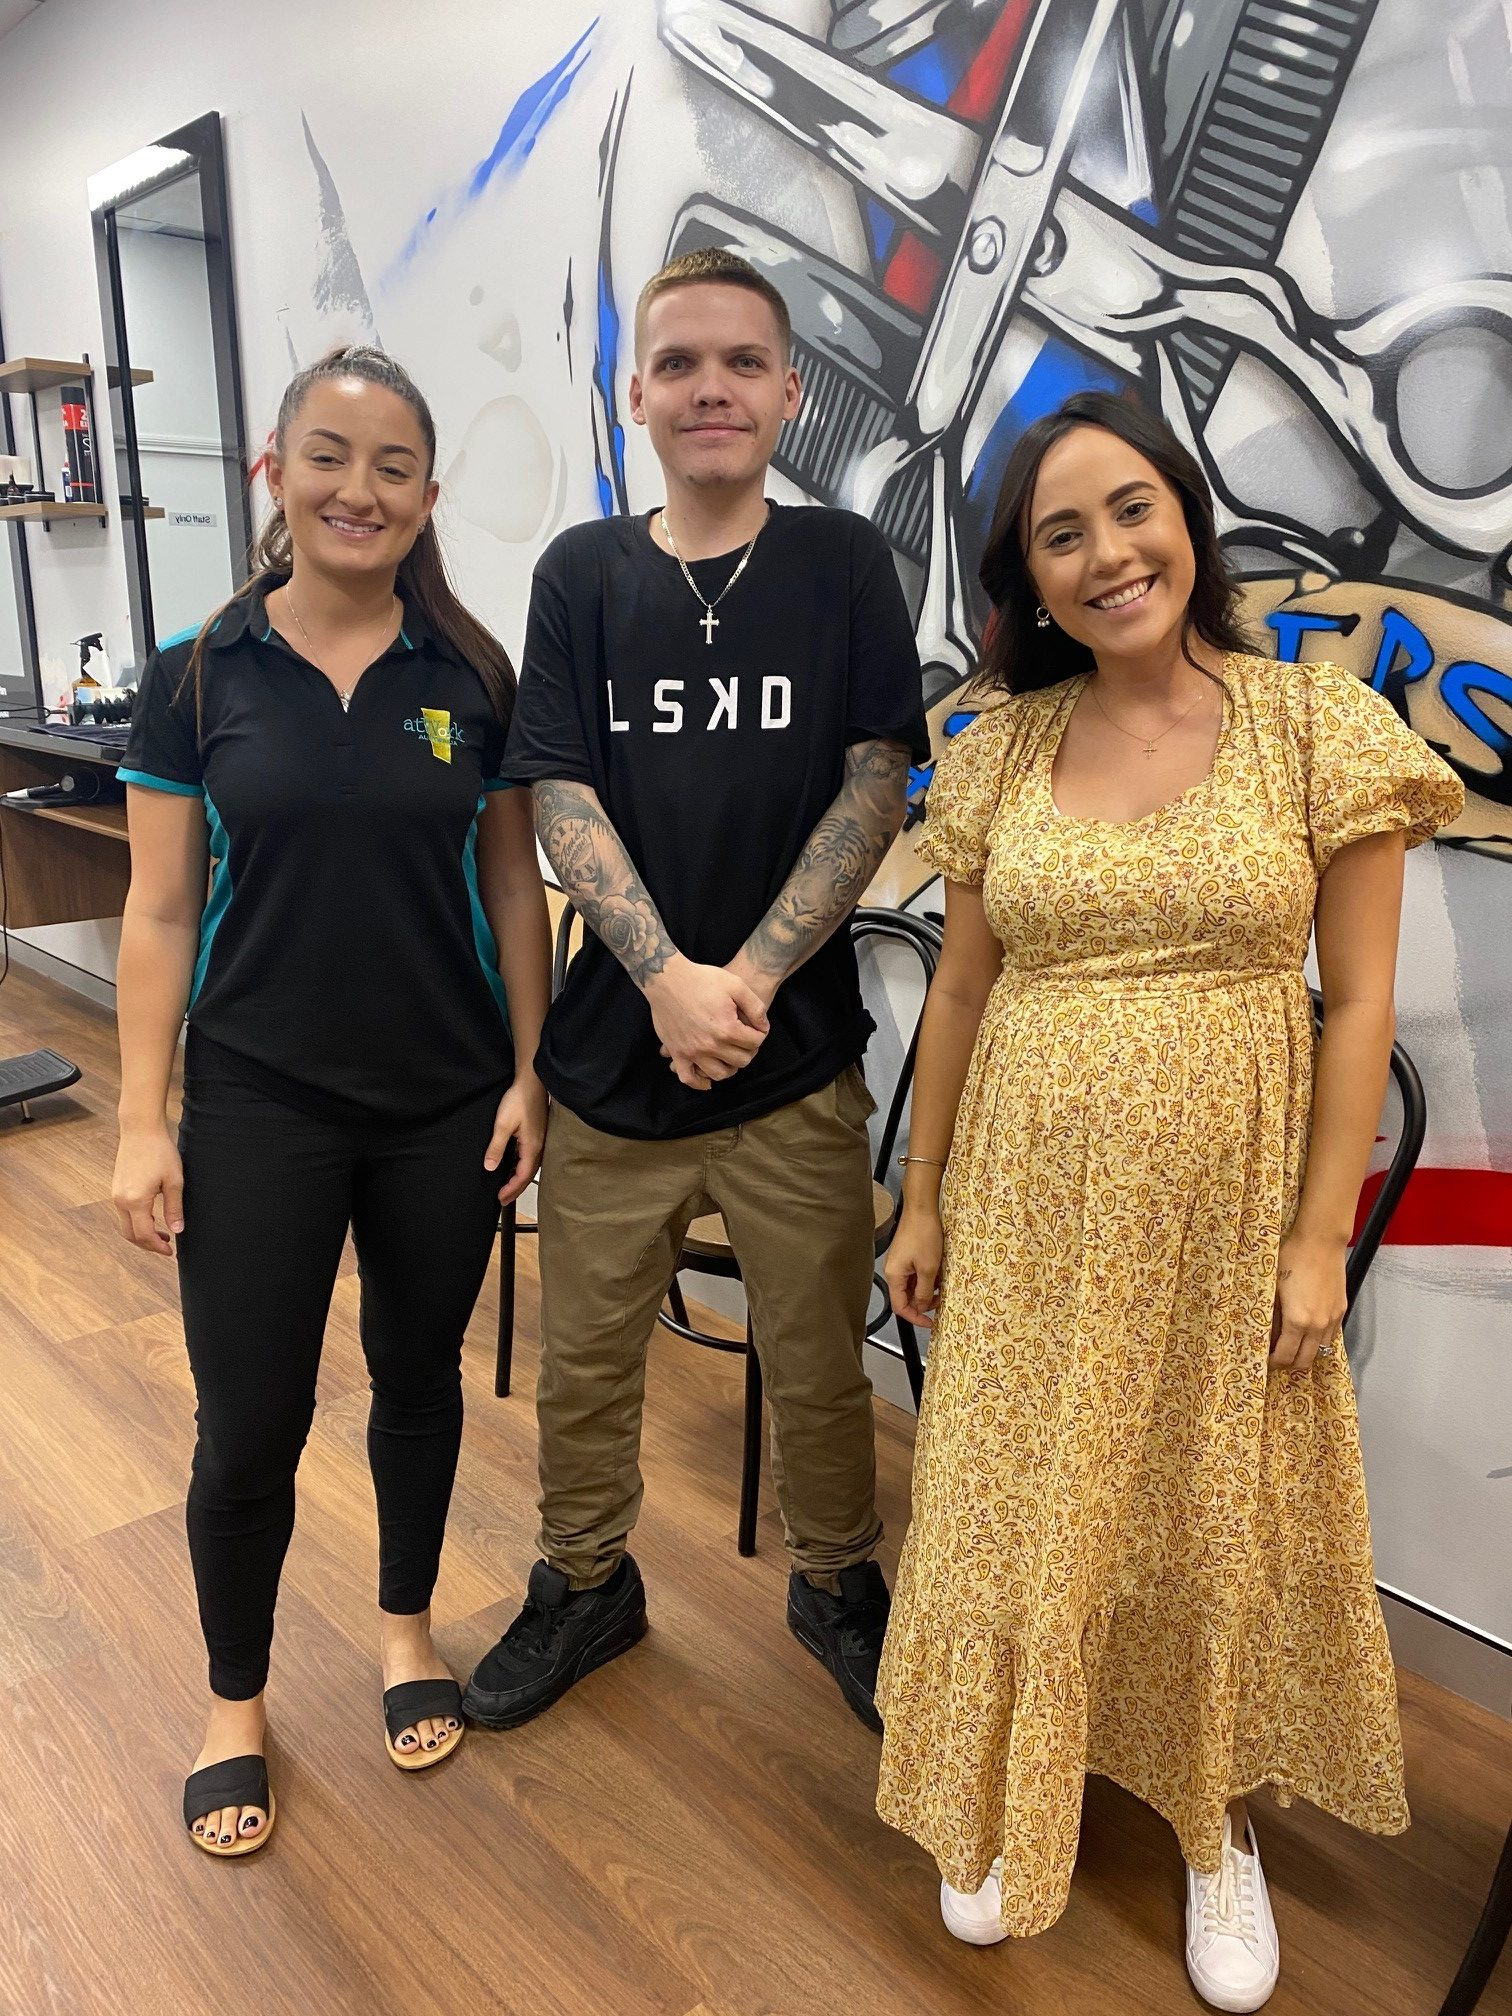 A cut above the rest: Ola Barber grows her business by supporting people living with disability